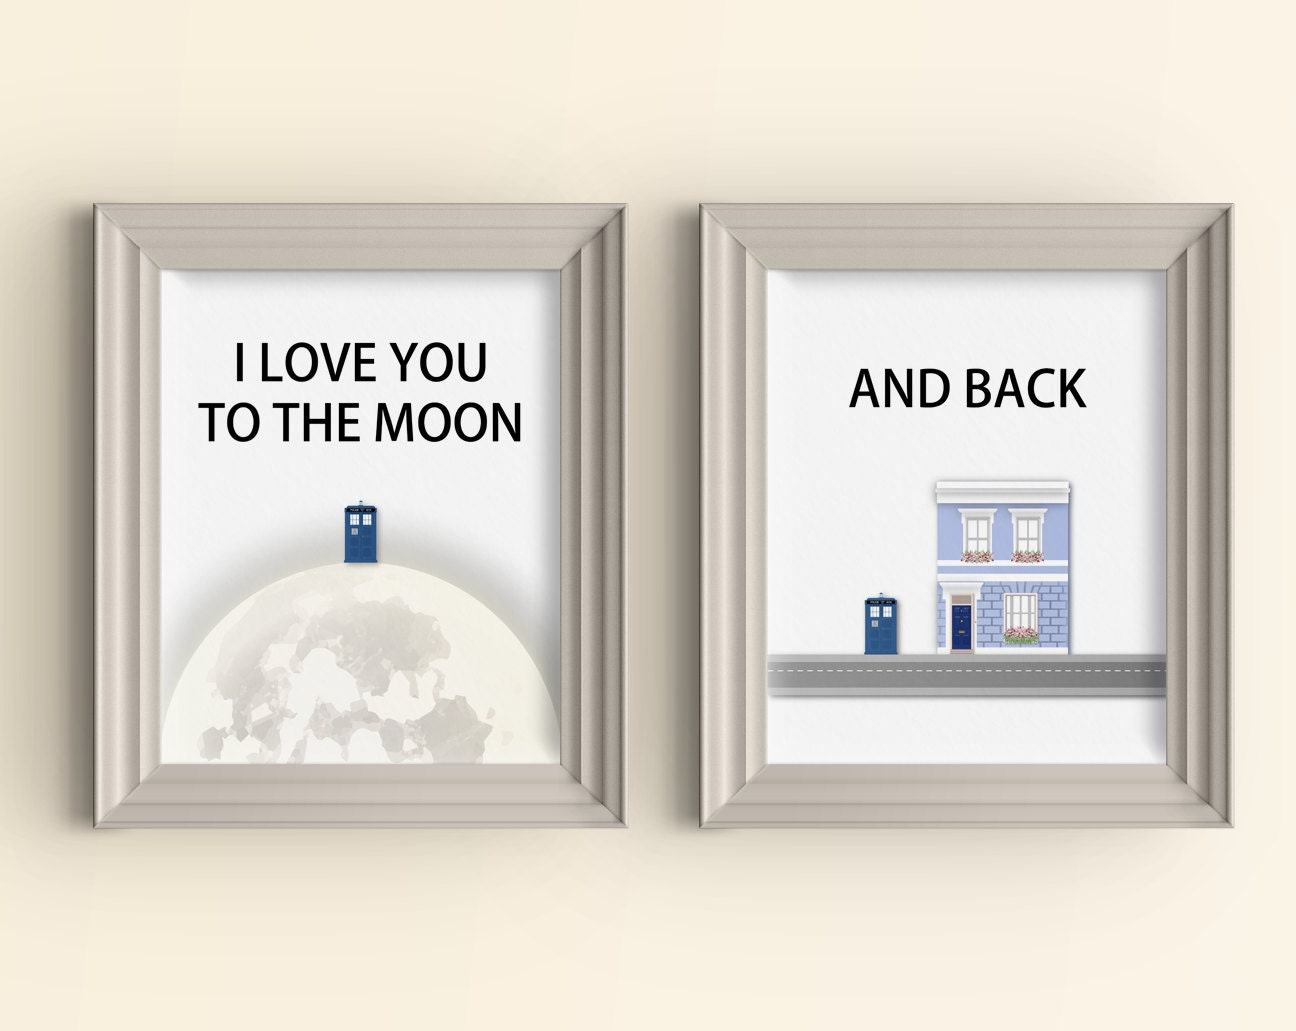 Doctor Who Quotes About Love Mesmerizing Doctor Who Valentine's Gift For Dr Who Whovian Geek Nerd